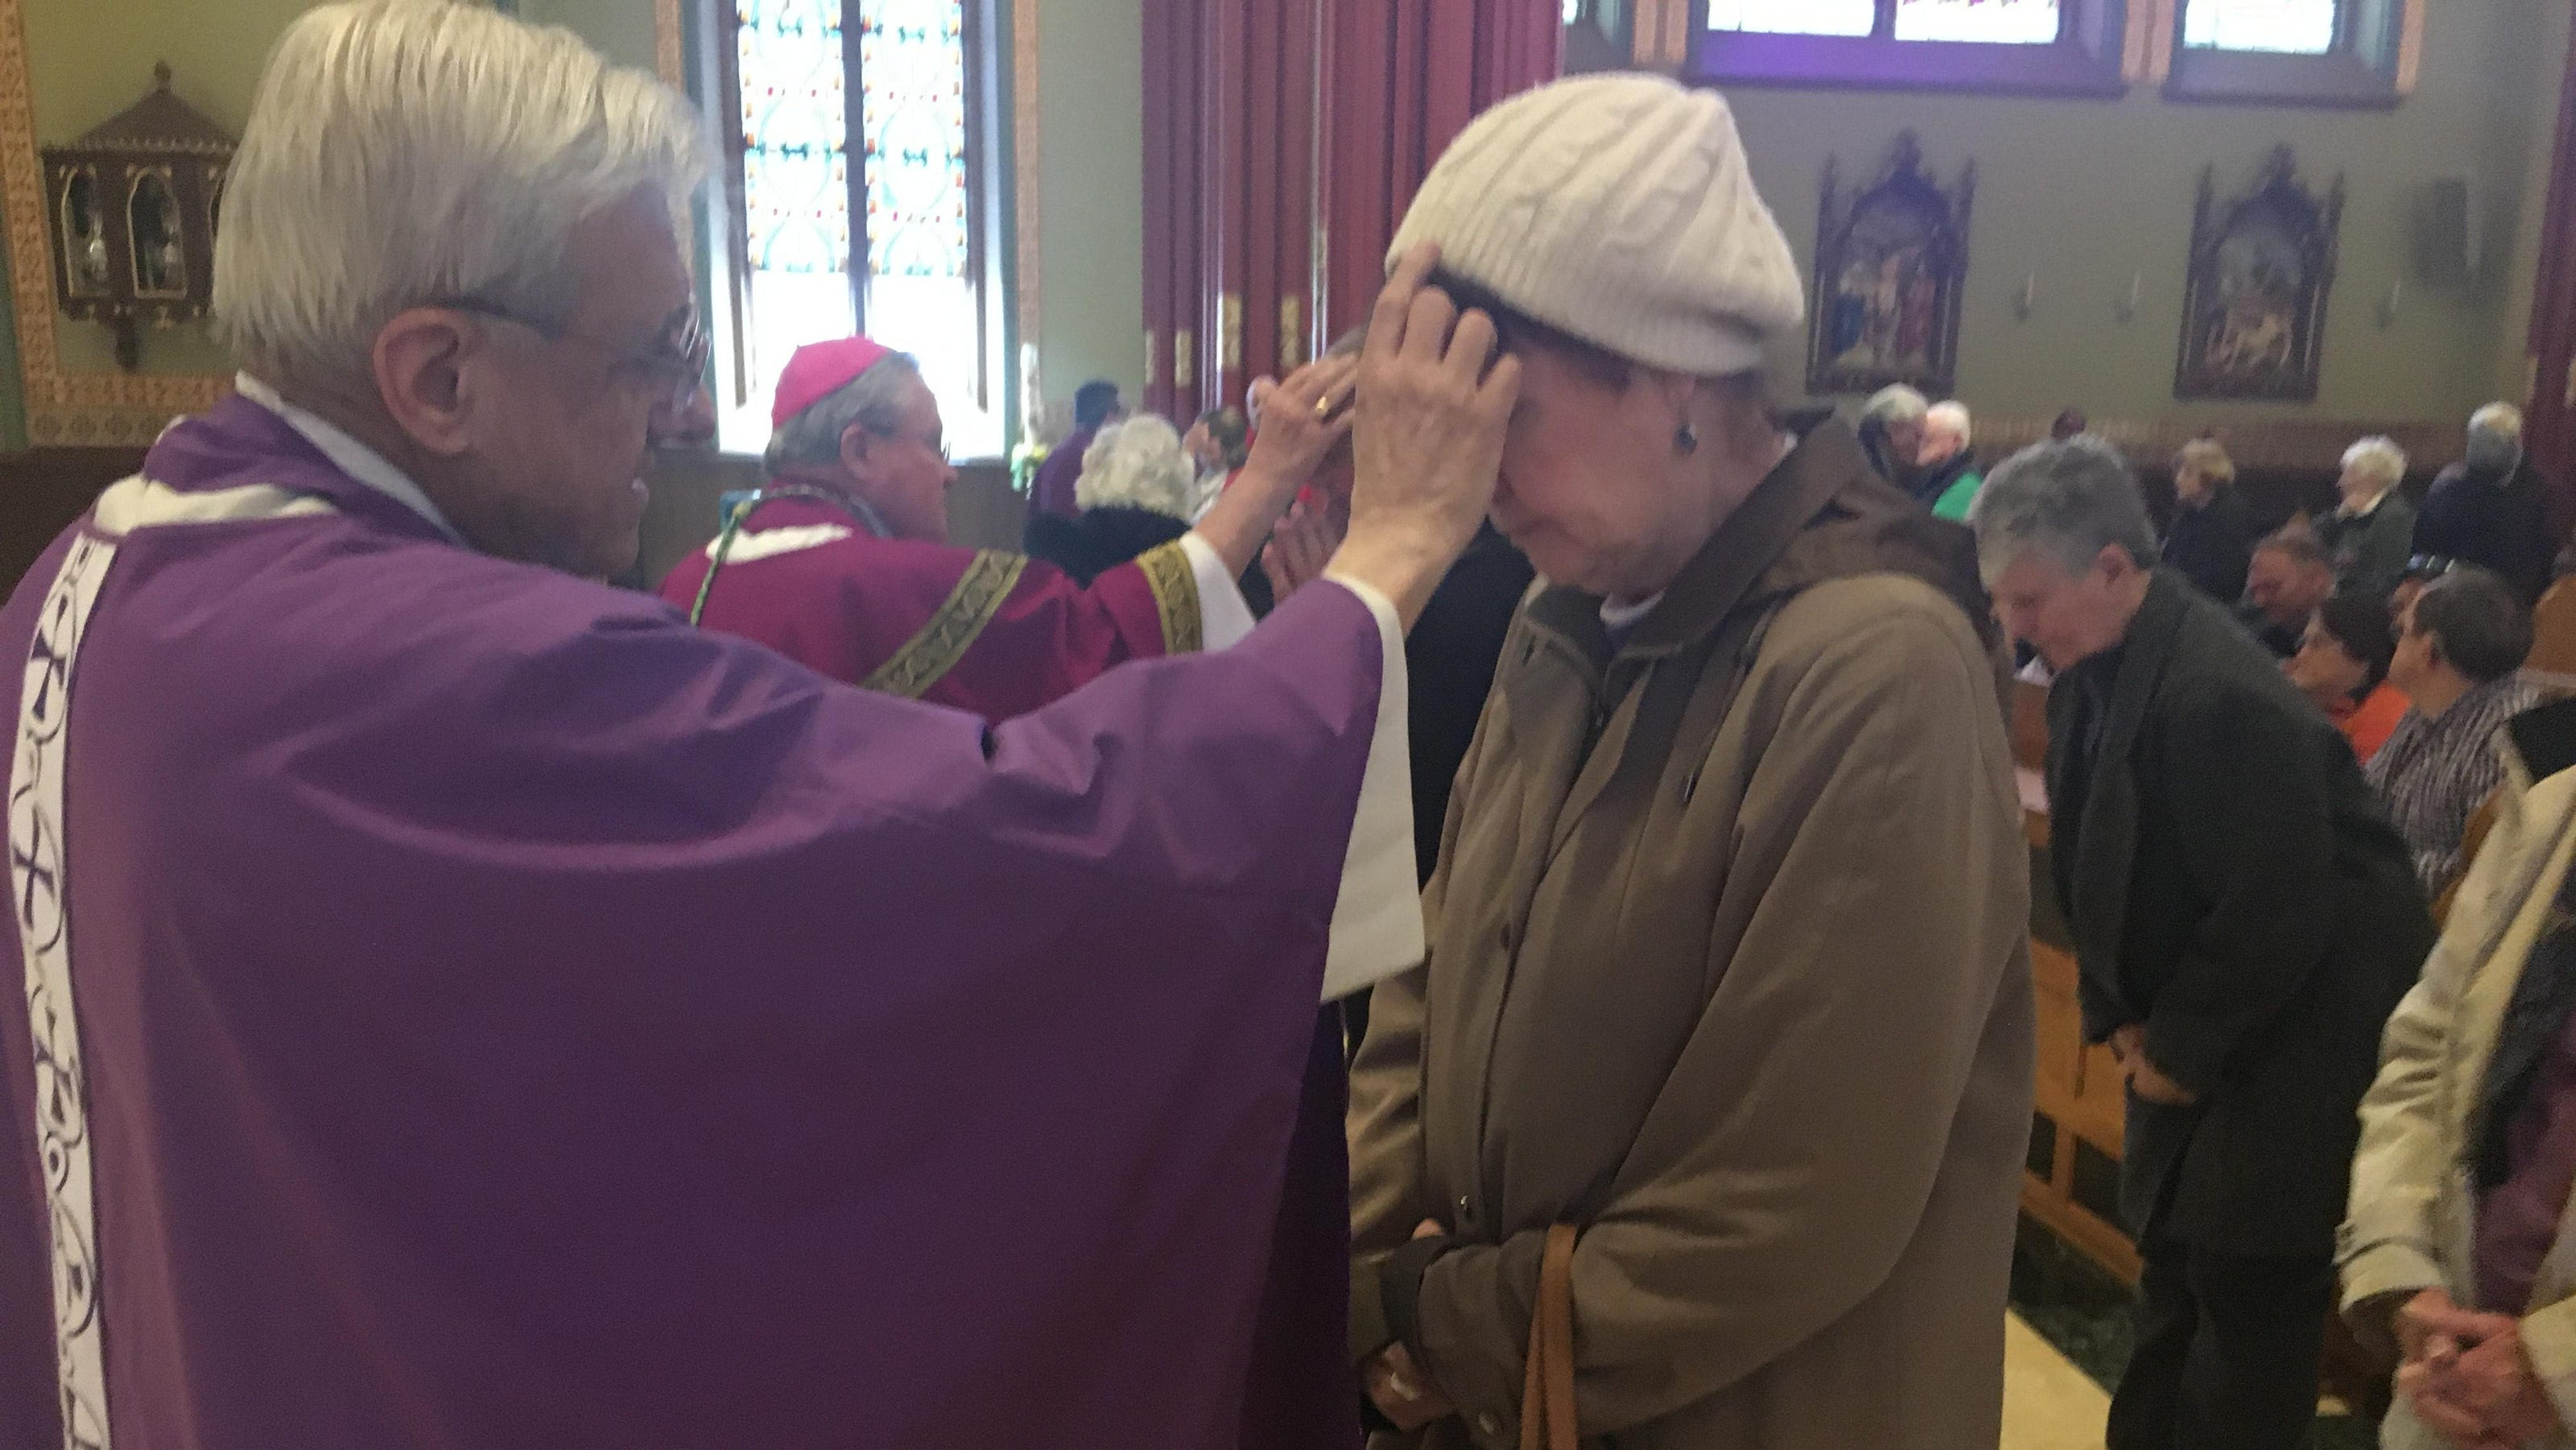 Local churches expect fewer people for Ash Wednesday